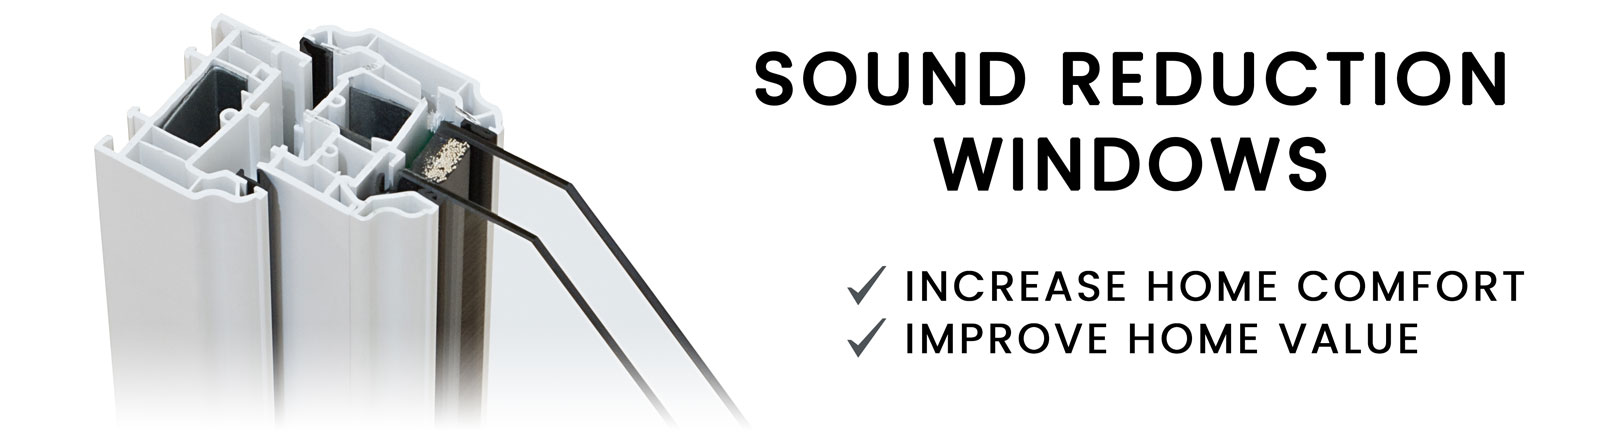 Sound reduction windows increase home comfort and improve home value